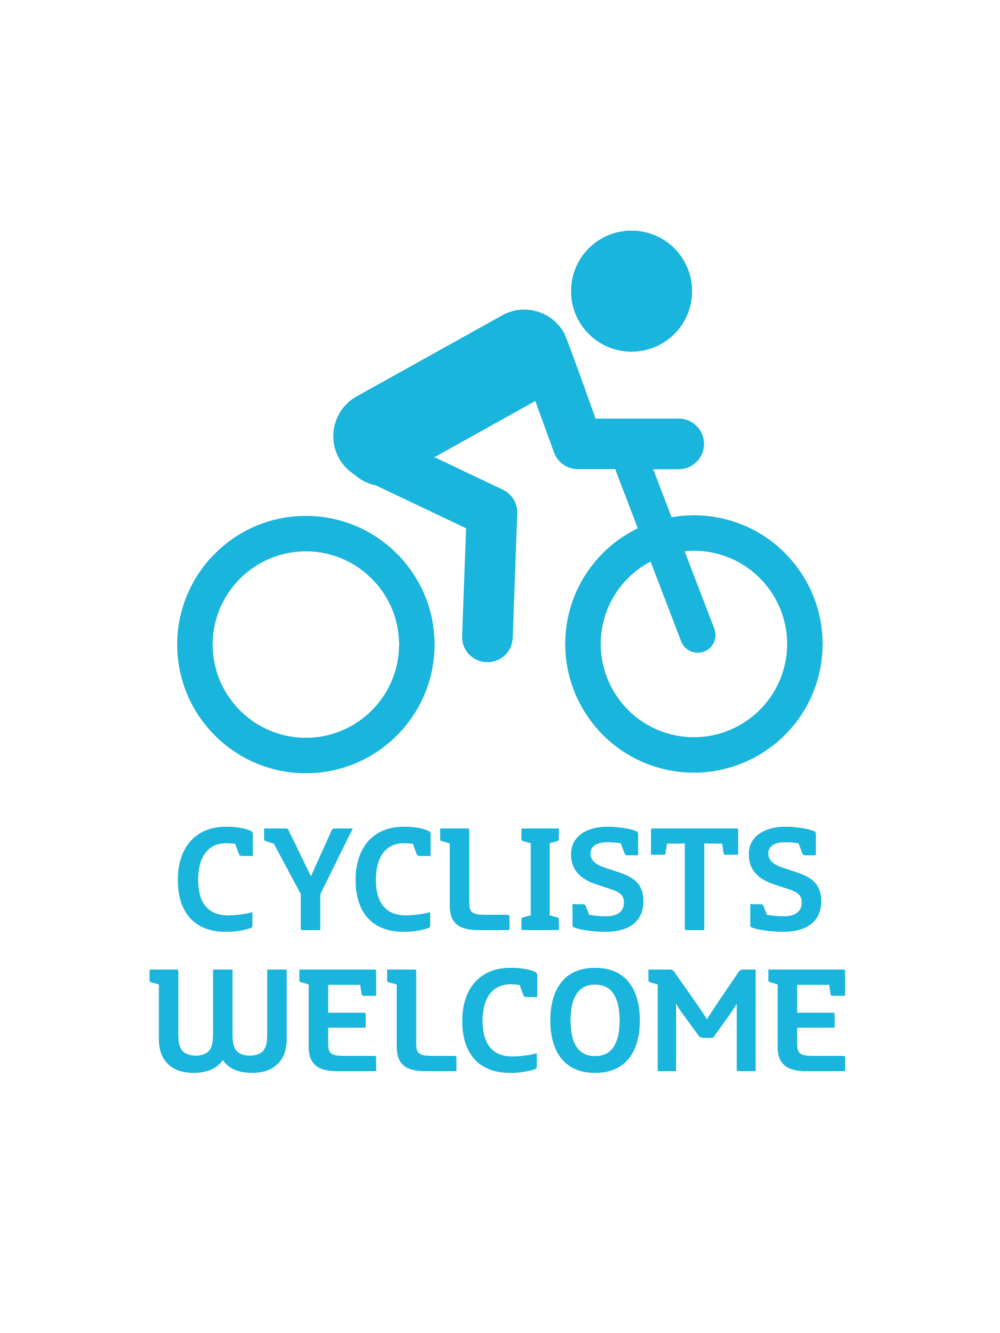 Cyclists welcome.jpg